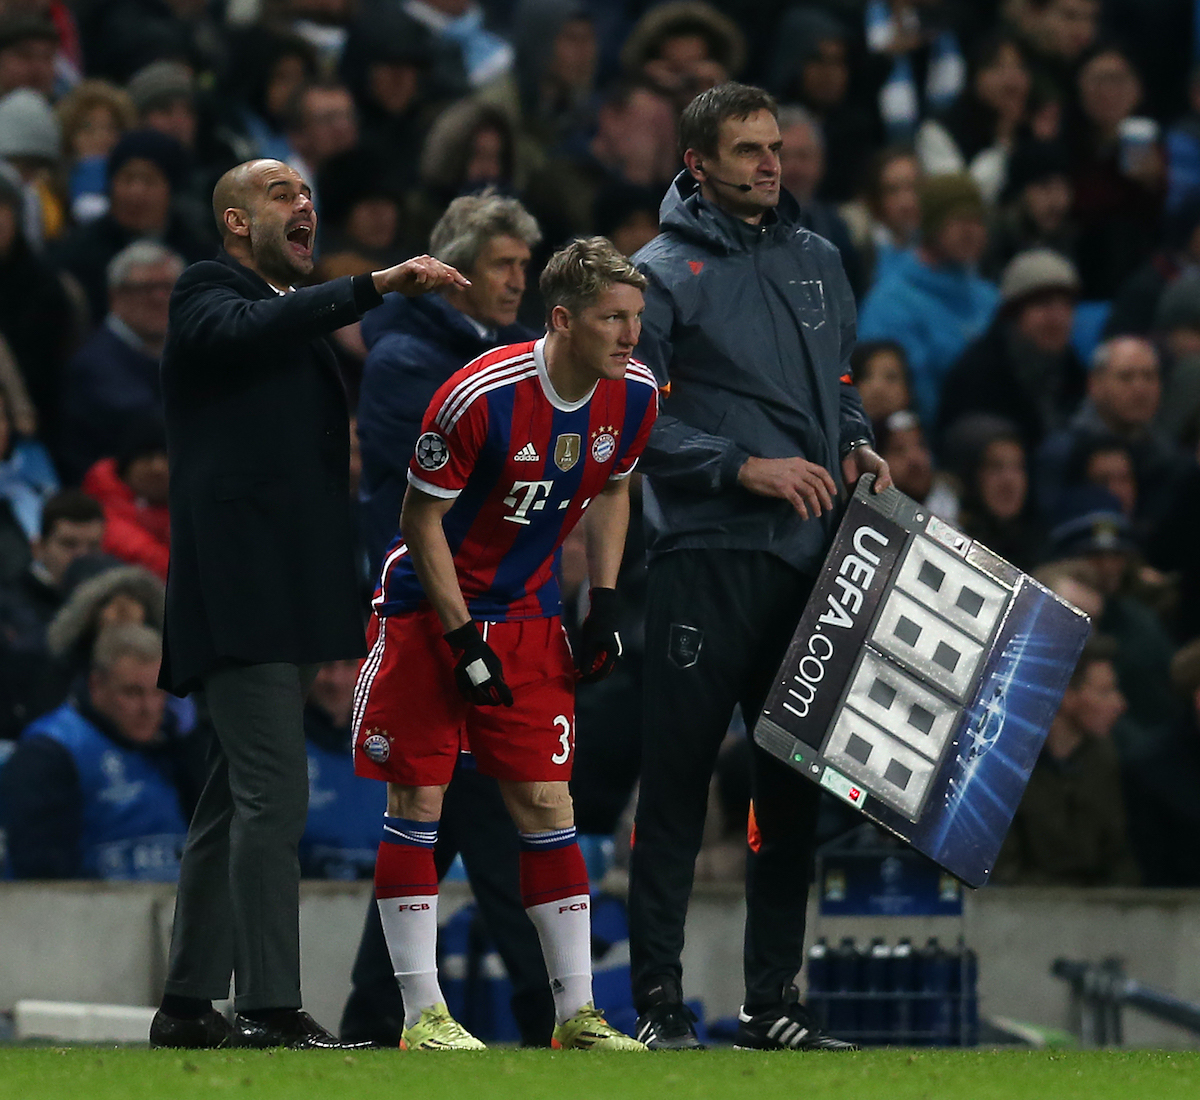 MANCHESTER, ENGLAND - Tuesday, November 25, 2014: Bayern Munich manager Pep Guardiola gestures from the touchline during the UEFA Champions League Group E match at the City of Manchester Stadium. (Pic by Chris Brunskill/Propaganda)